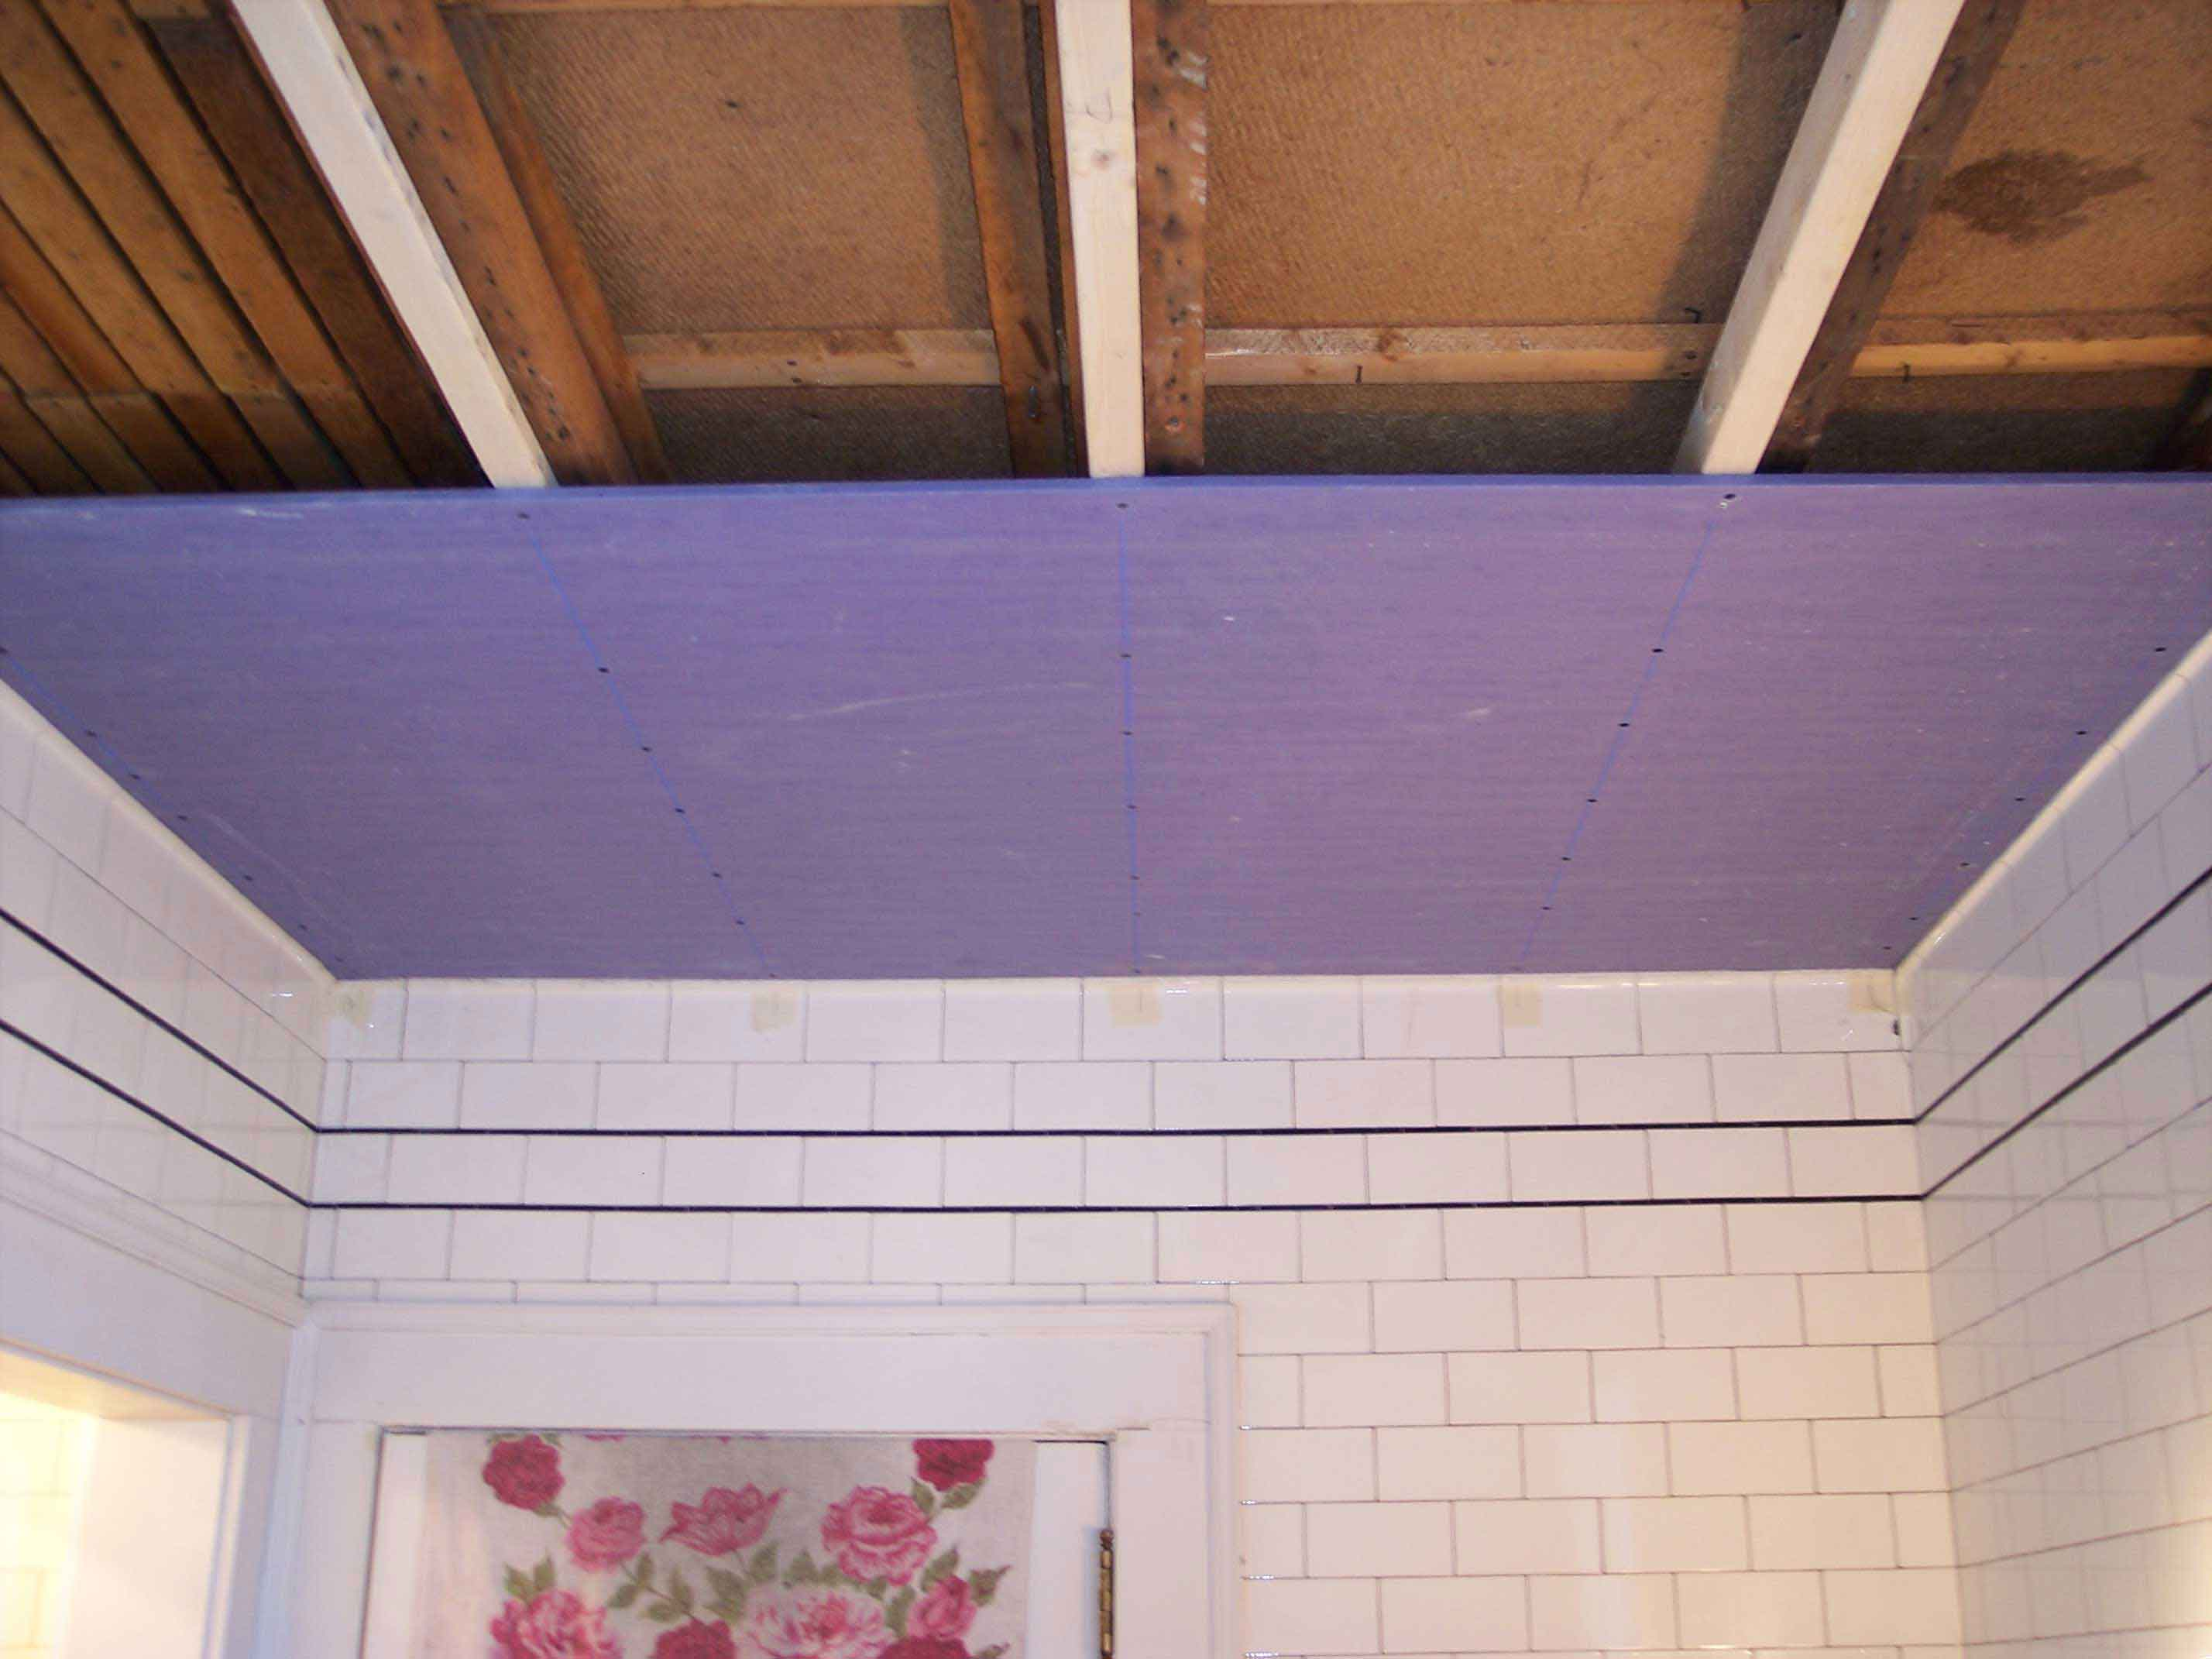 Drywall ceiling in an old house that meets tiled walls drywall drywall ceiling in an old house that meets tiled walls 1005869 web dailygadgetfo Images